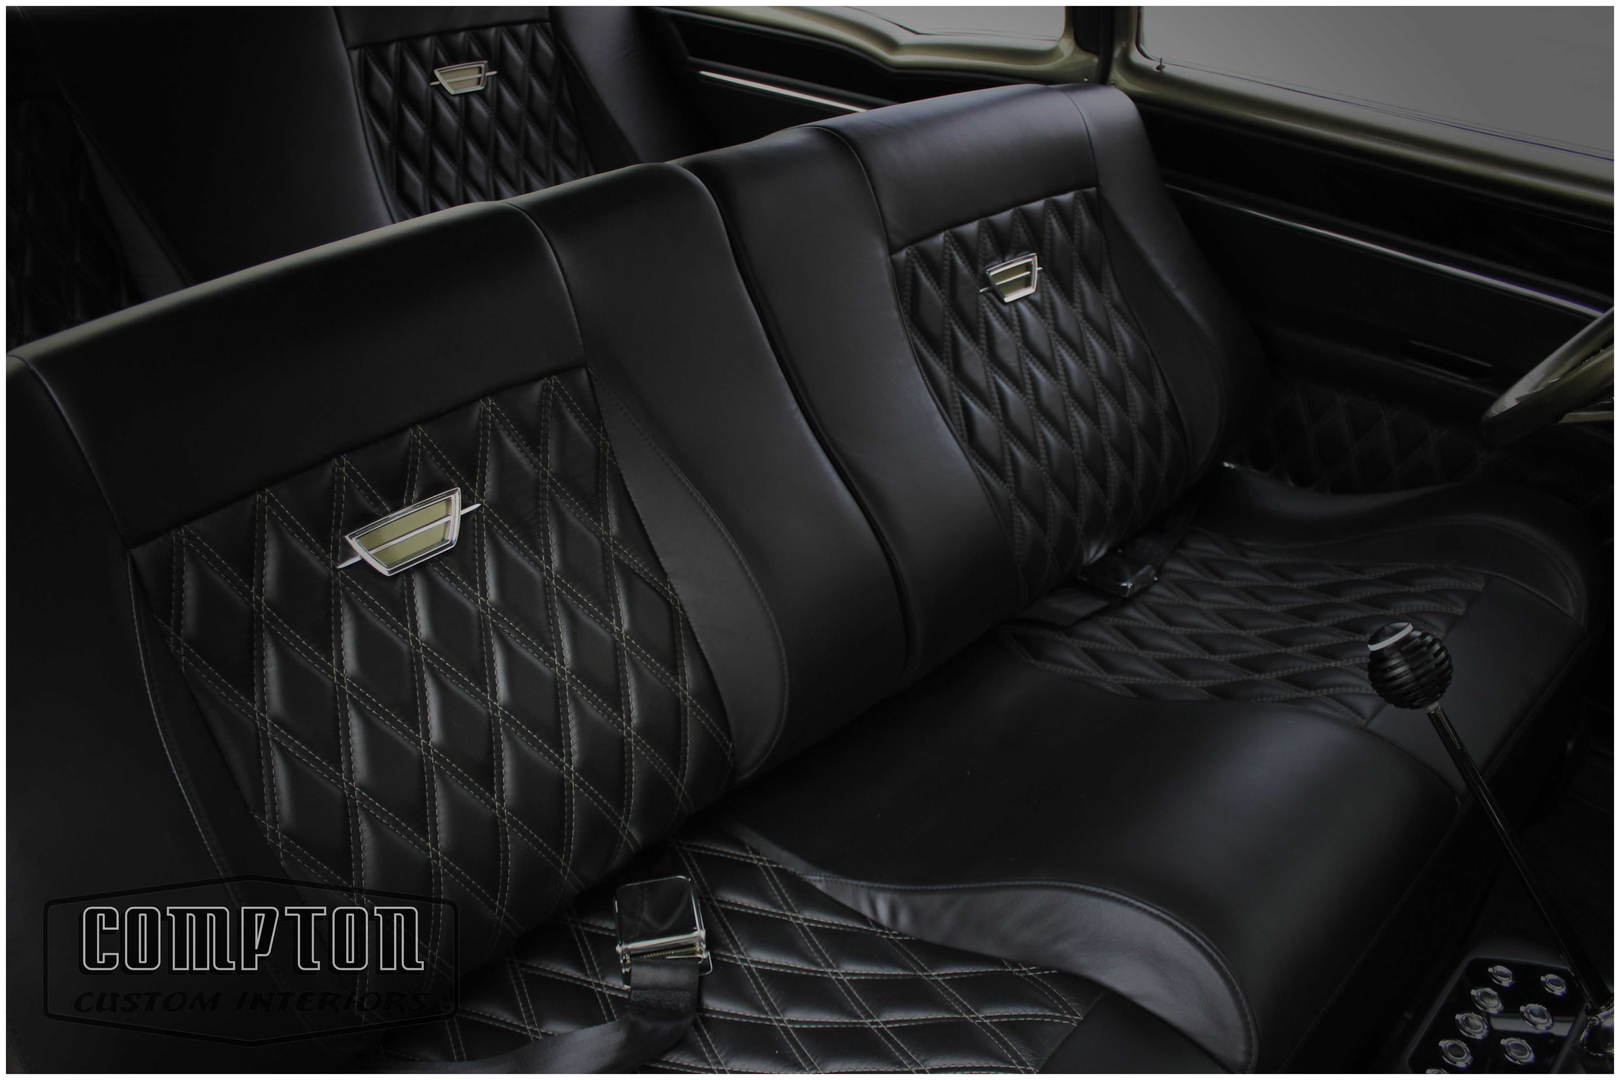 Compton custom interiors has over 50 years combined experience in the automotive interior and audio business our staff has been designing and building